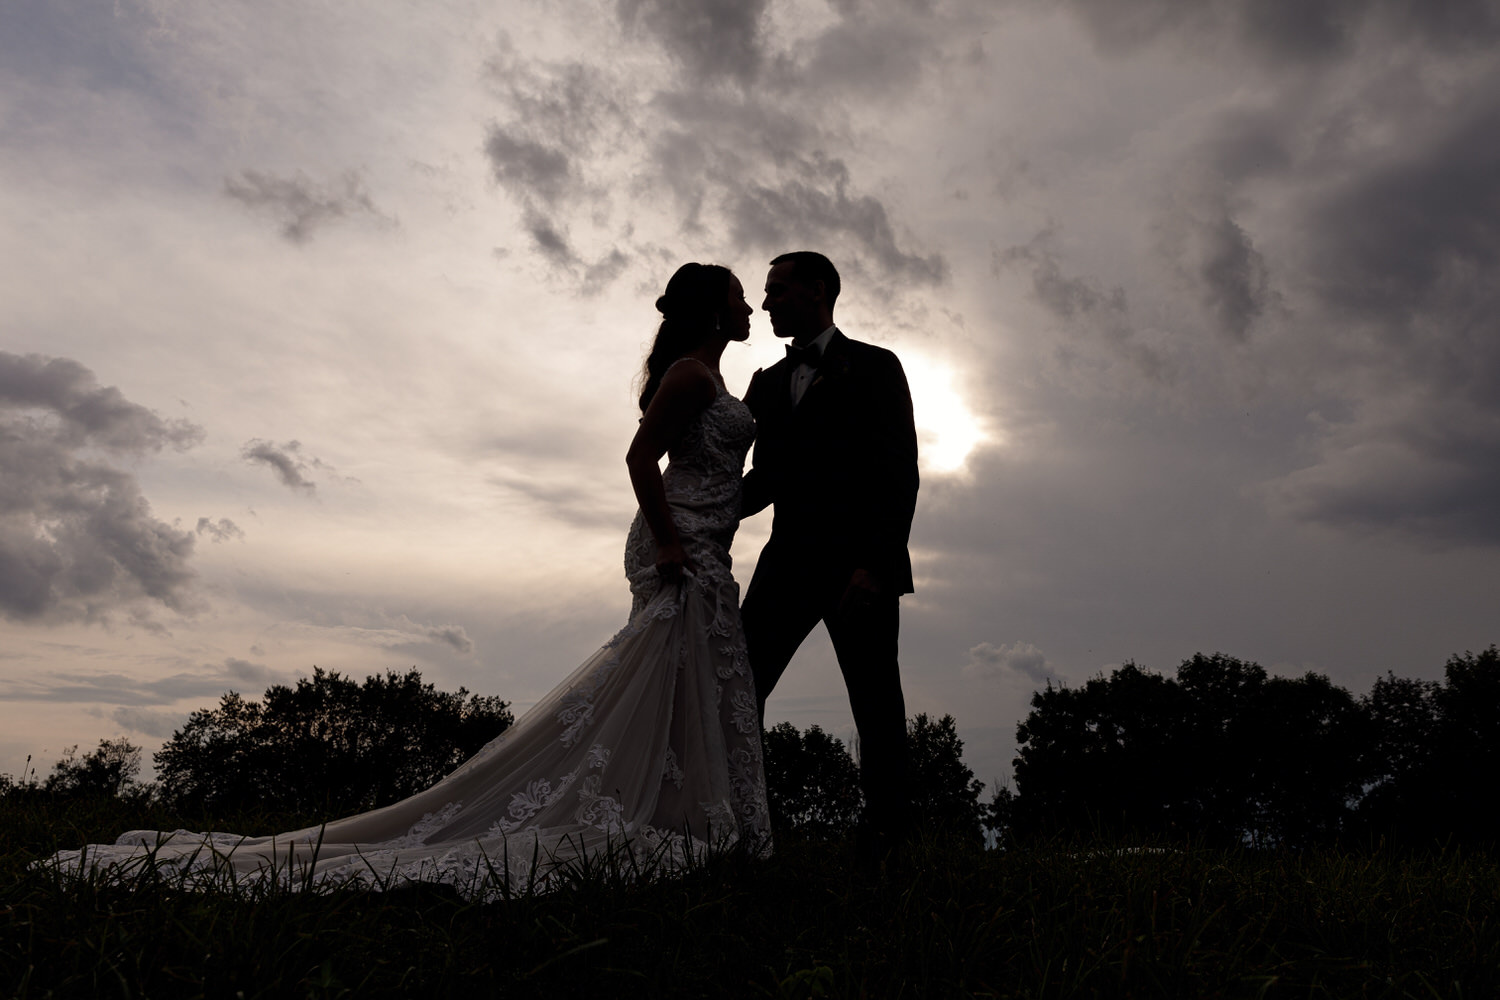 Dramatic photo of bride and groom.